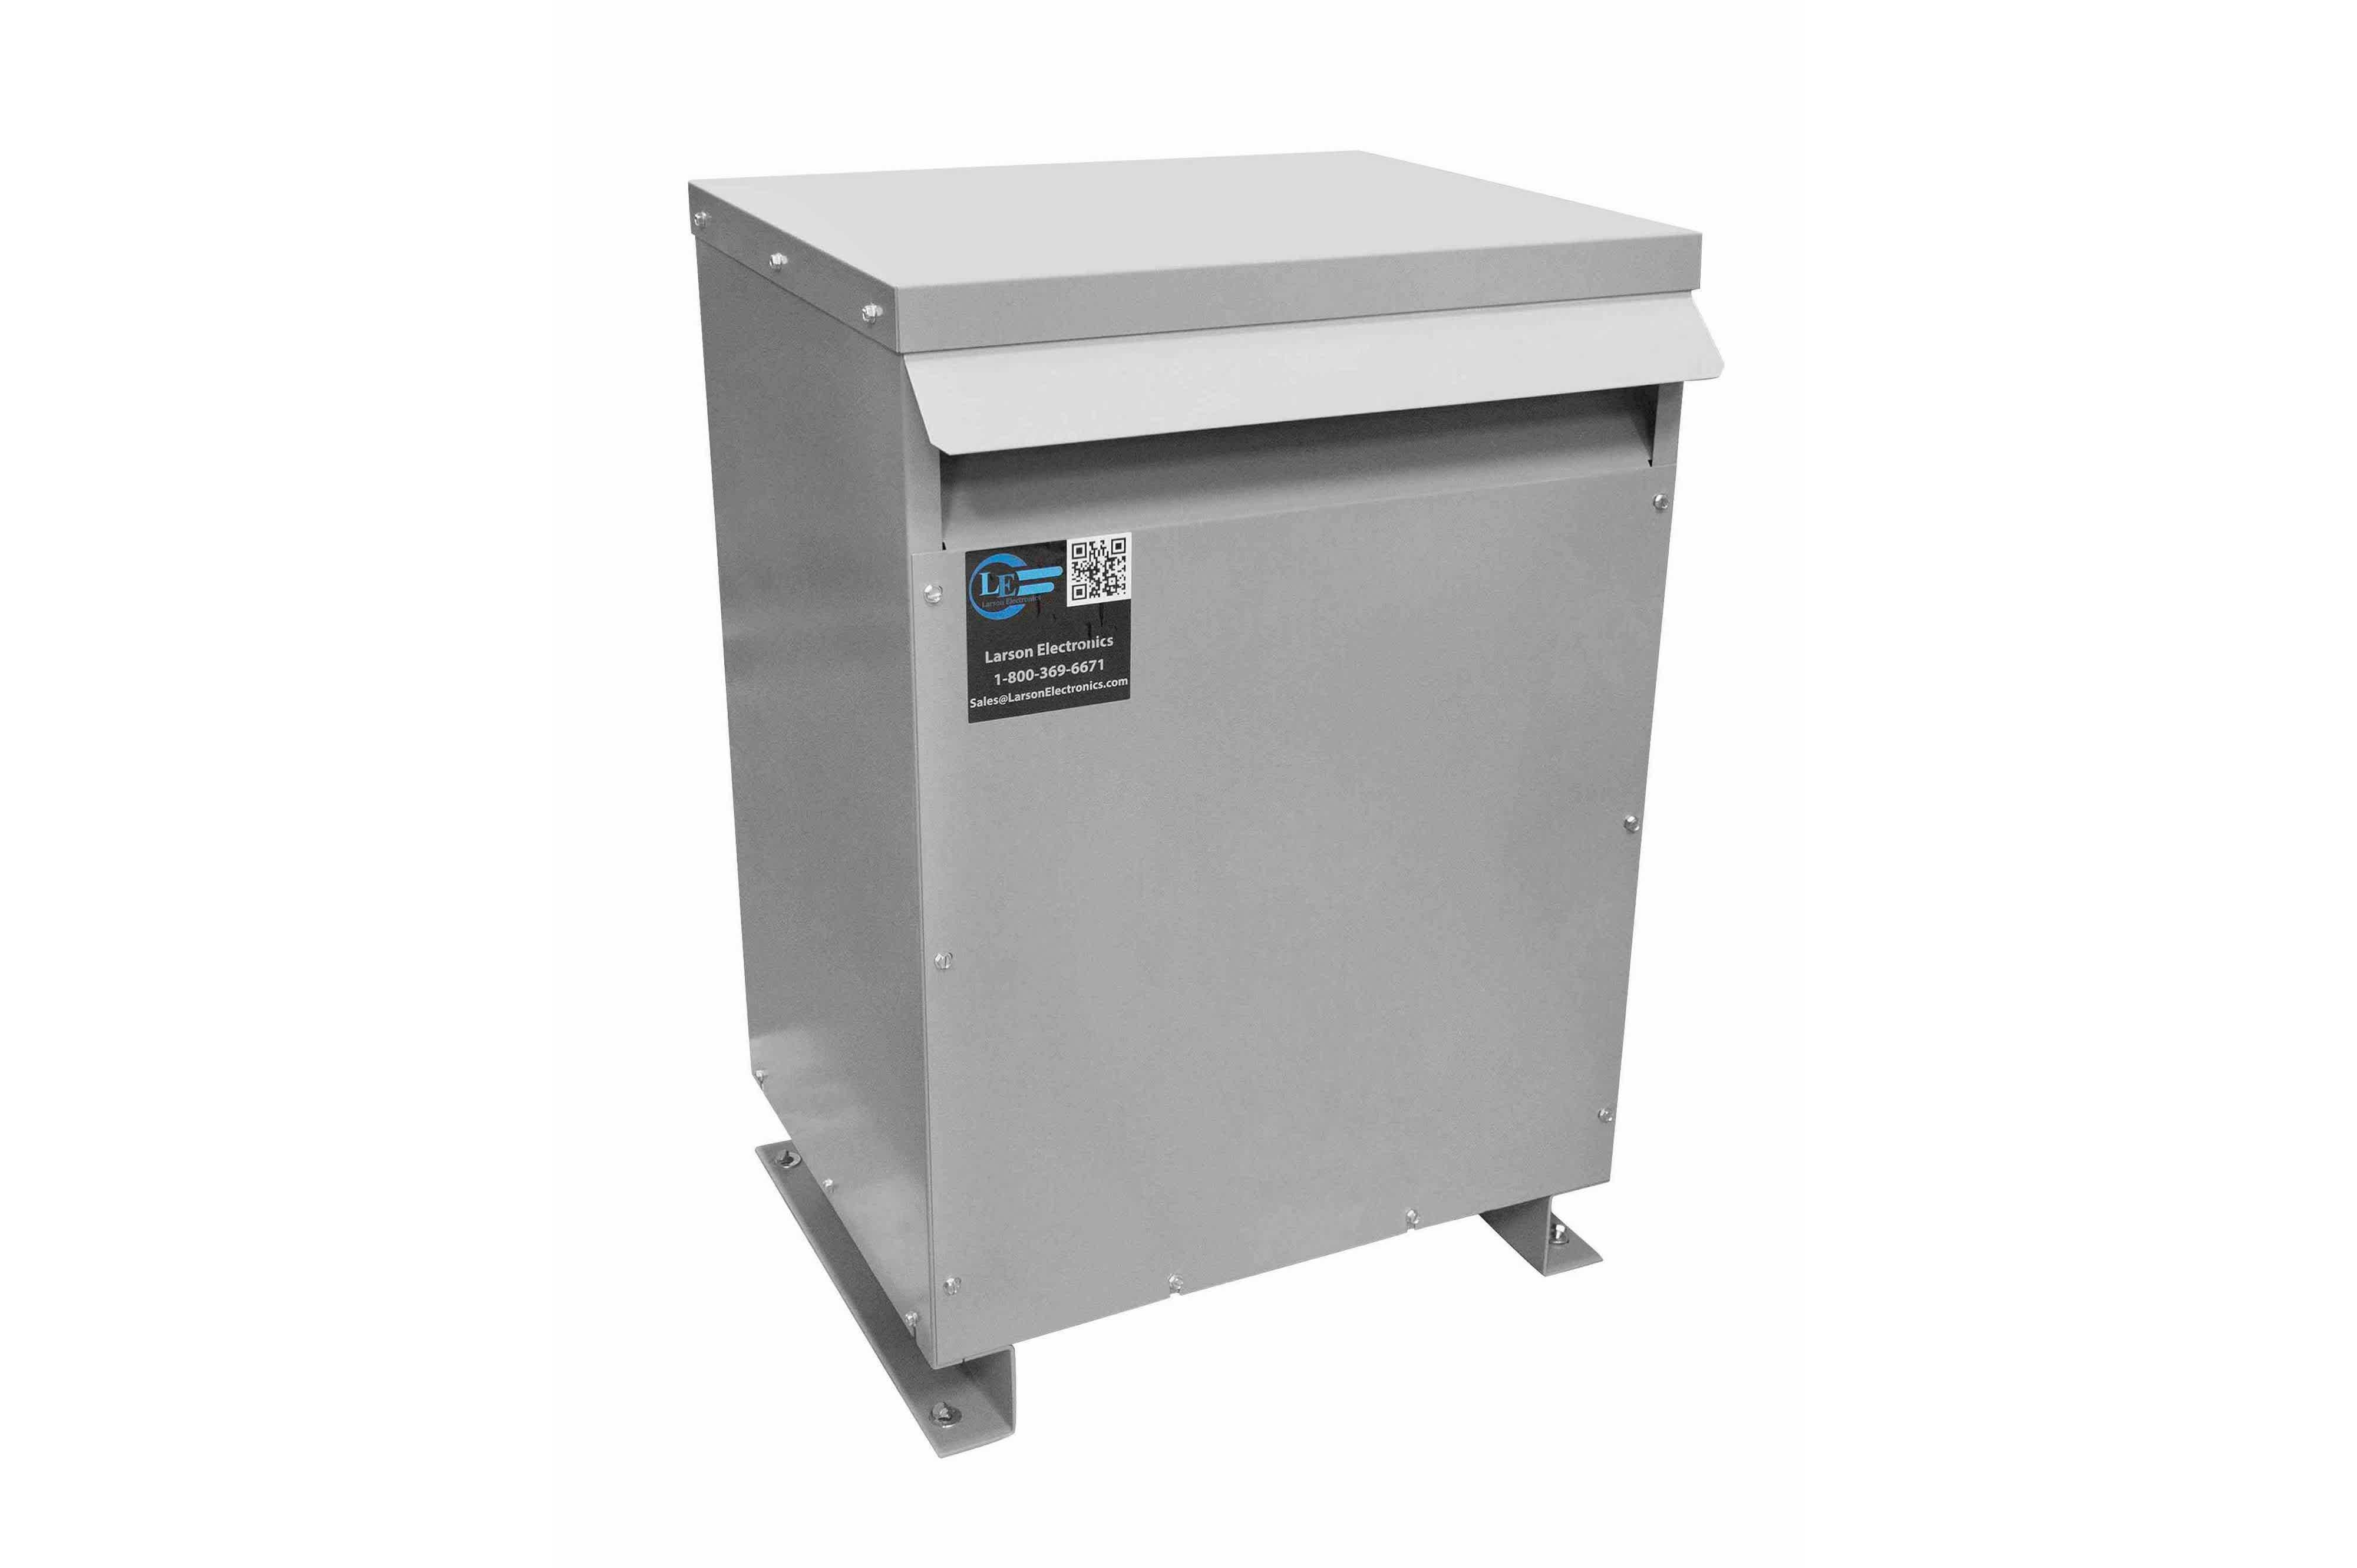 30 kVA 3PH Isolation Transformer, 460V Wye Primary, 575V Delta Secondary, N3R, Ventilated, 60 Hz